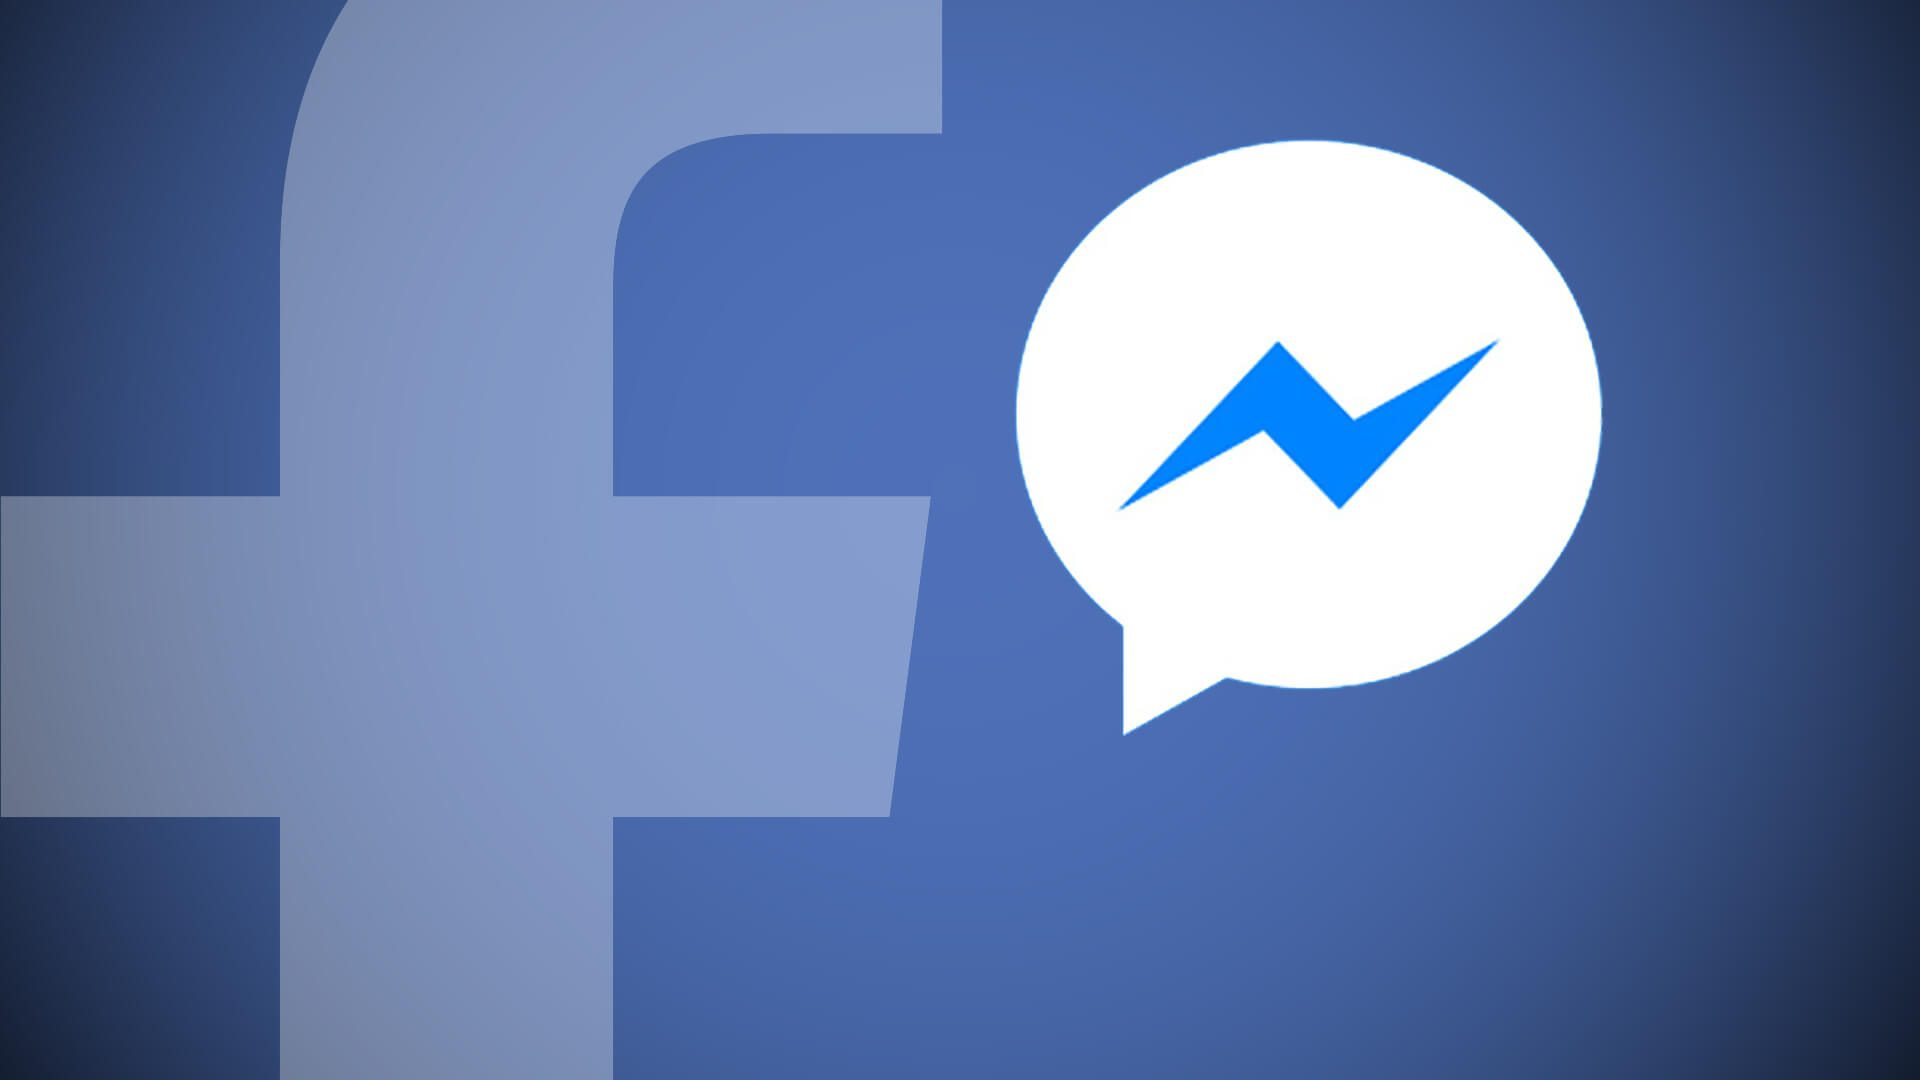 Facebook Messenger Marketing Strategy